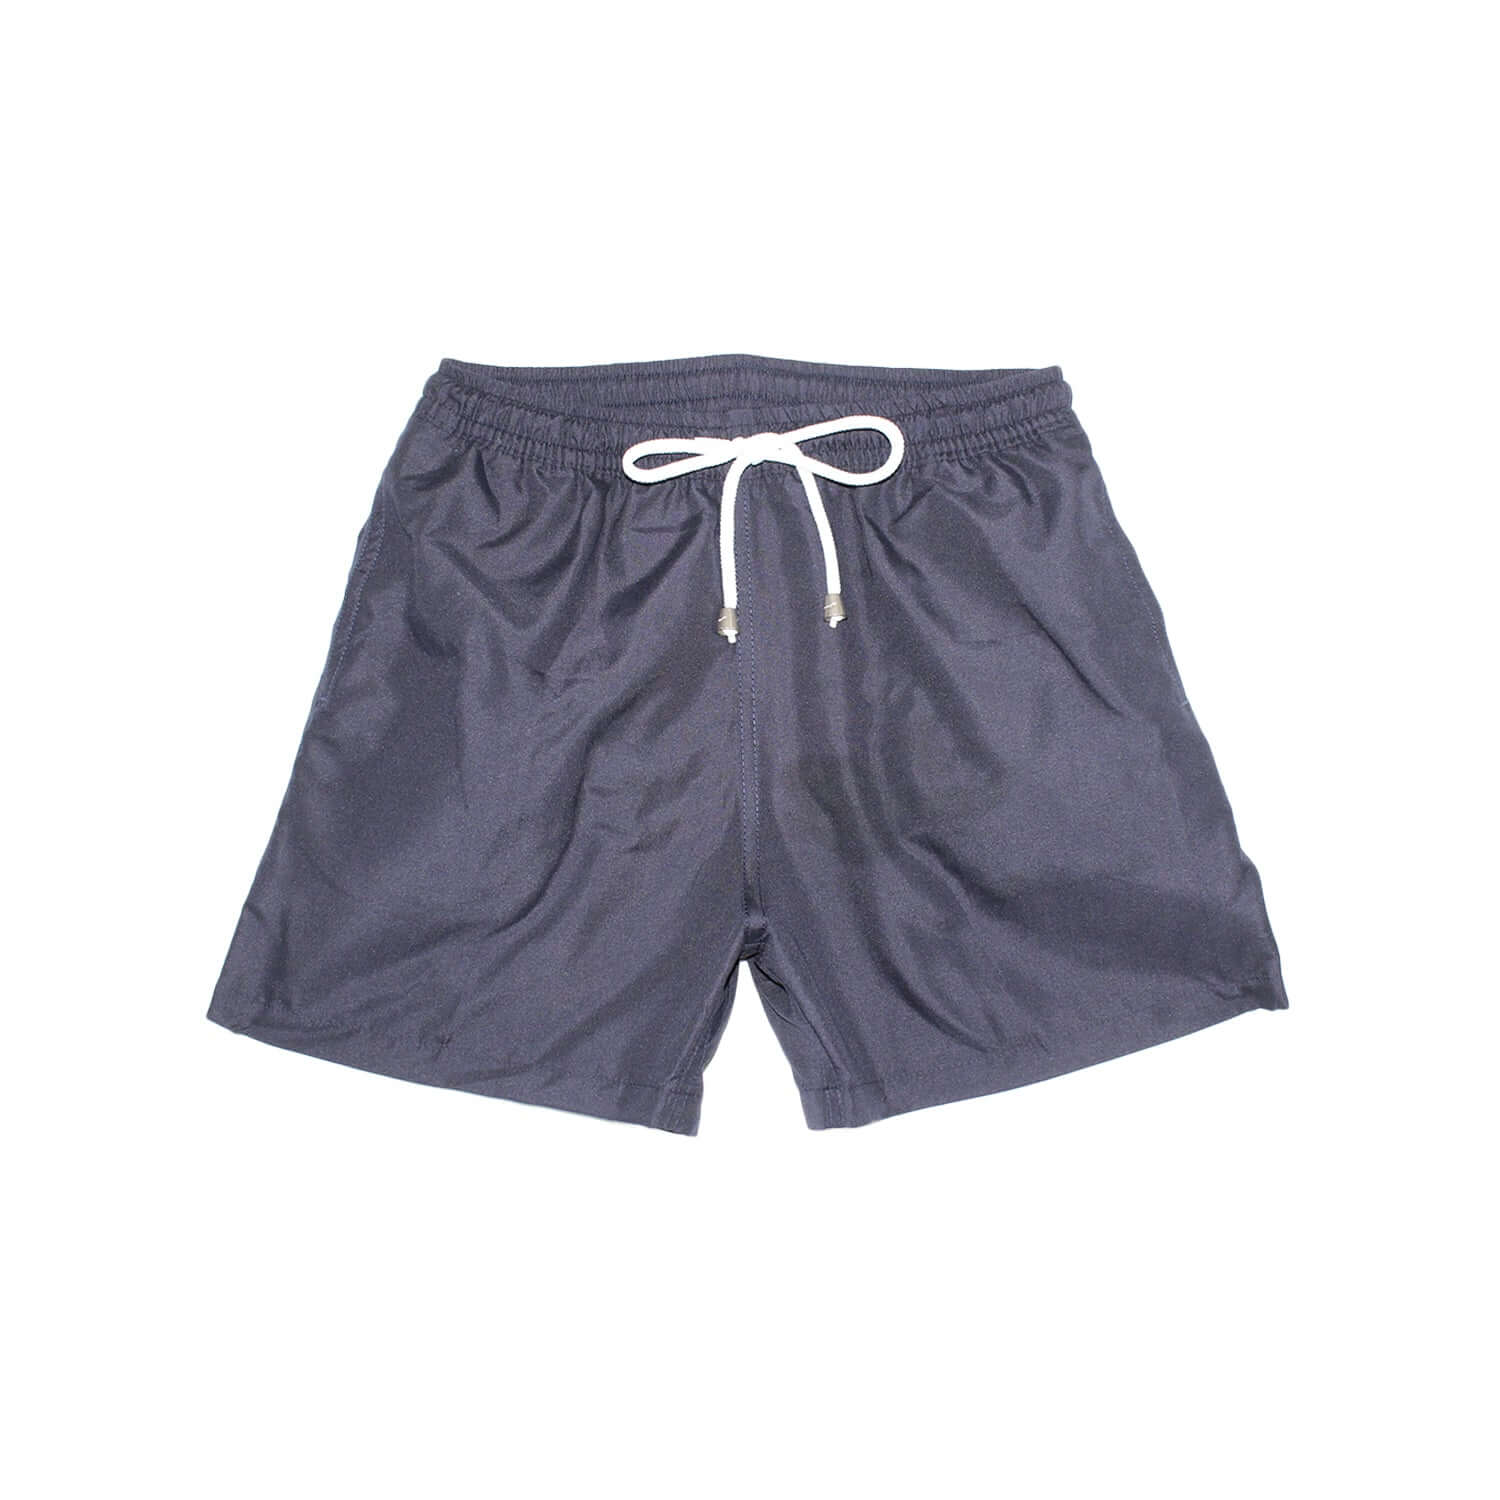 SOLID GREY - Clorofila Sea Wear